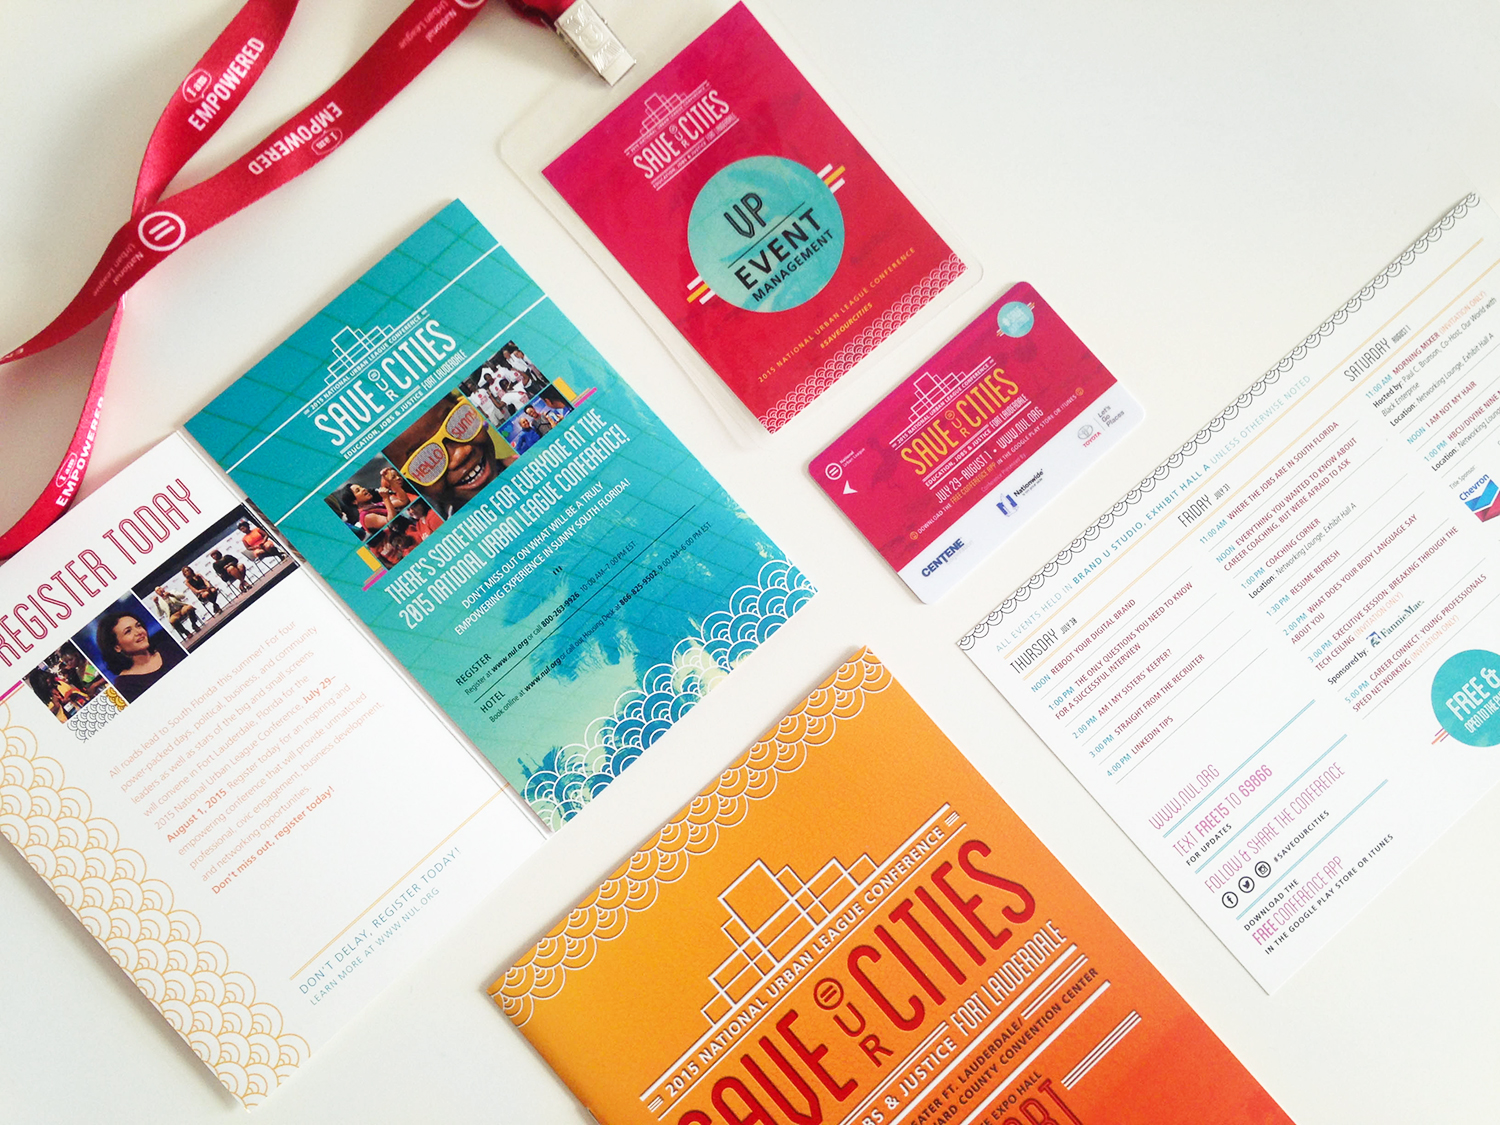 julierado-2015-national-urban-league-conference-collateral-fs-12.jpg